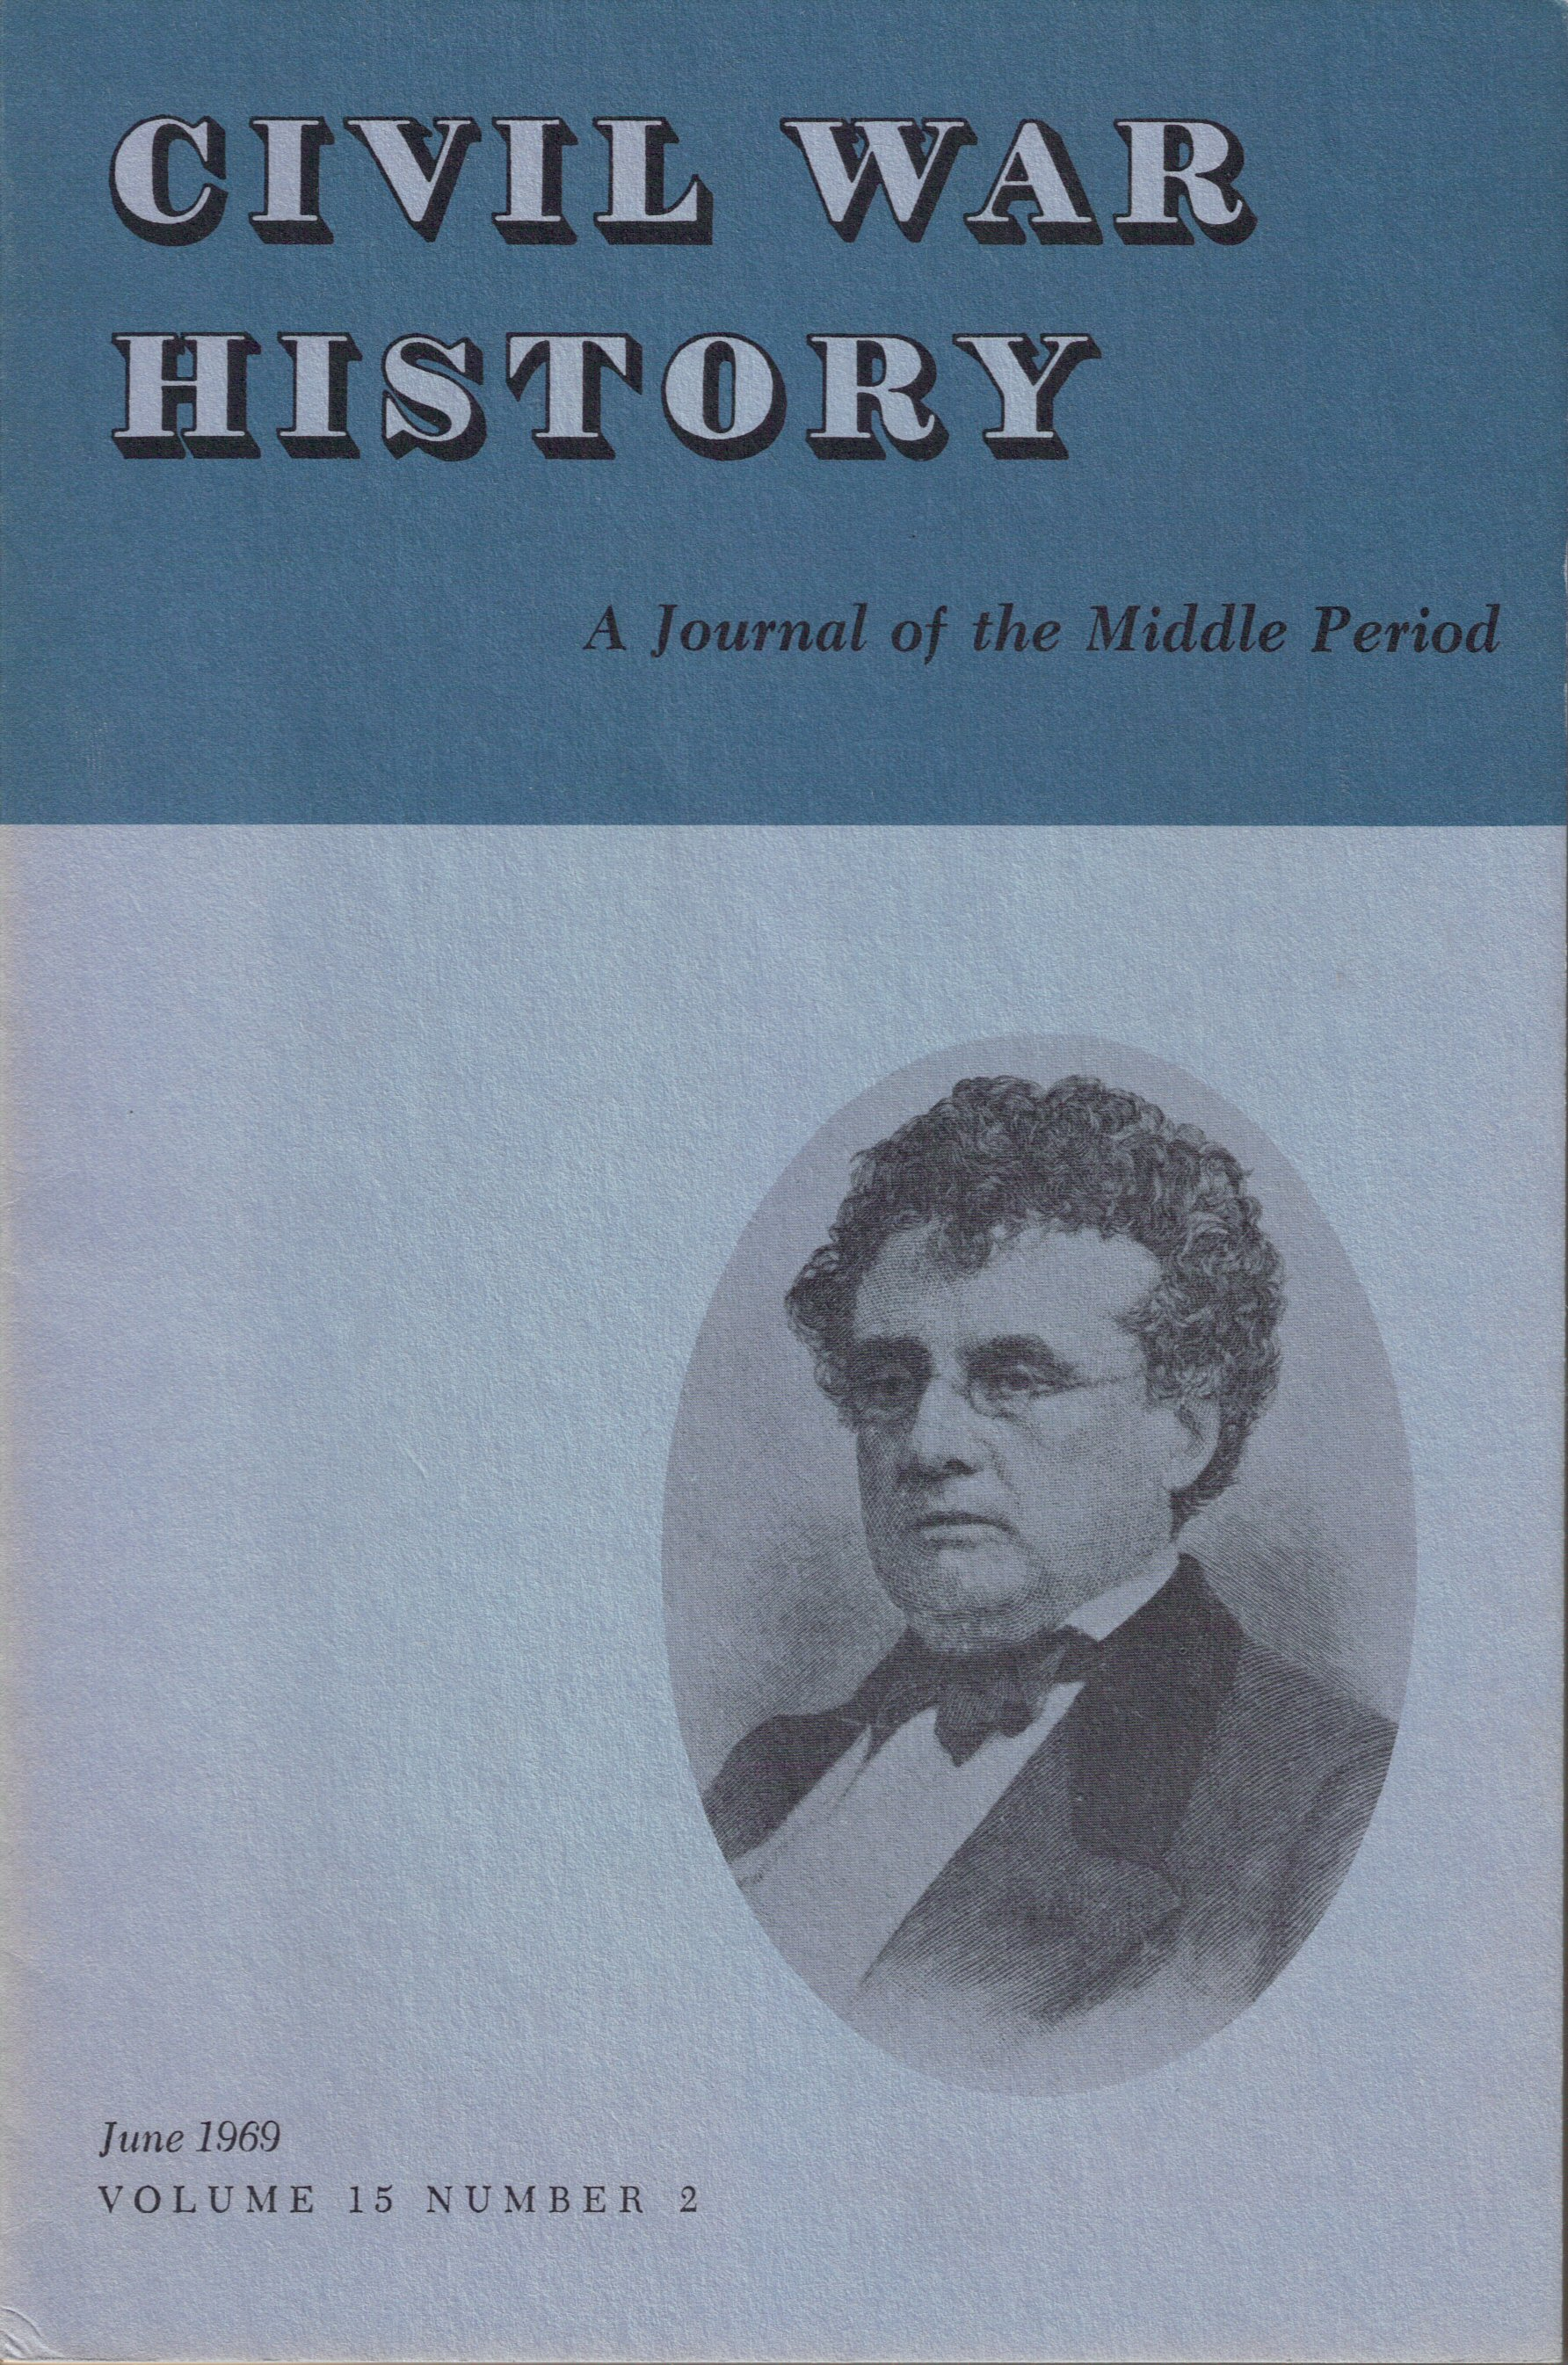 Civil War History, Volume 15, Number 2 (June 1969)